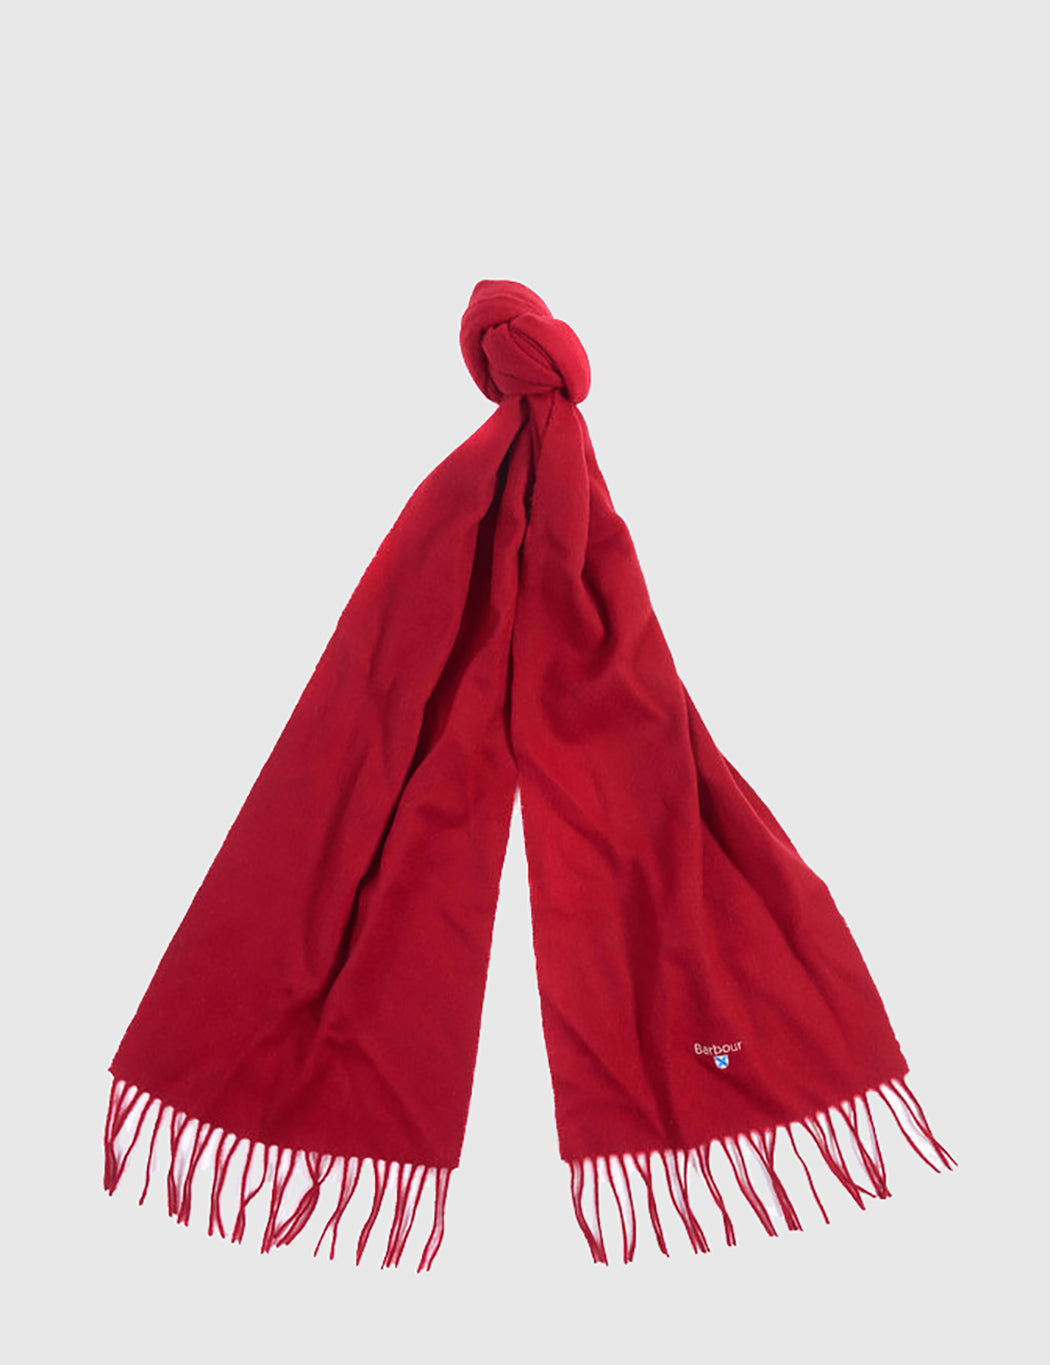 Barbour Plain Lambswool Scarf - Red